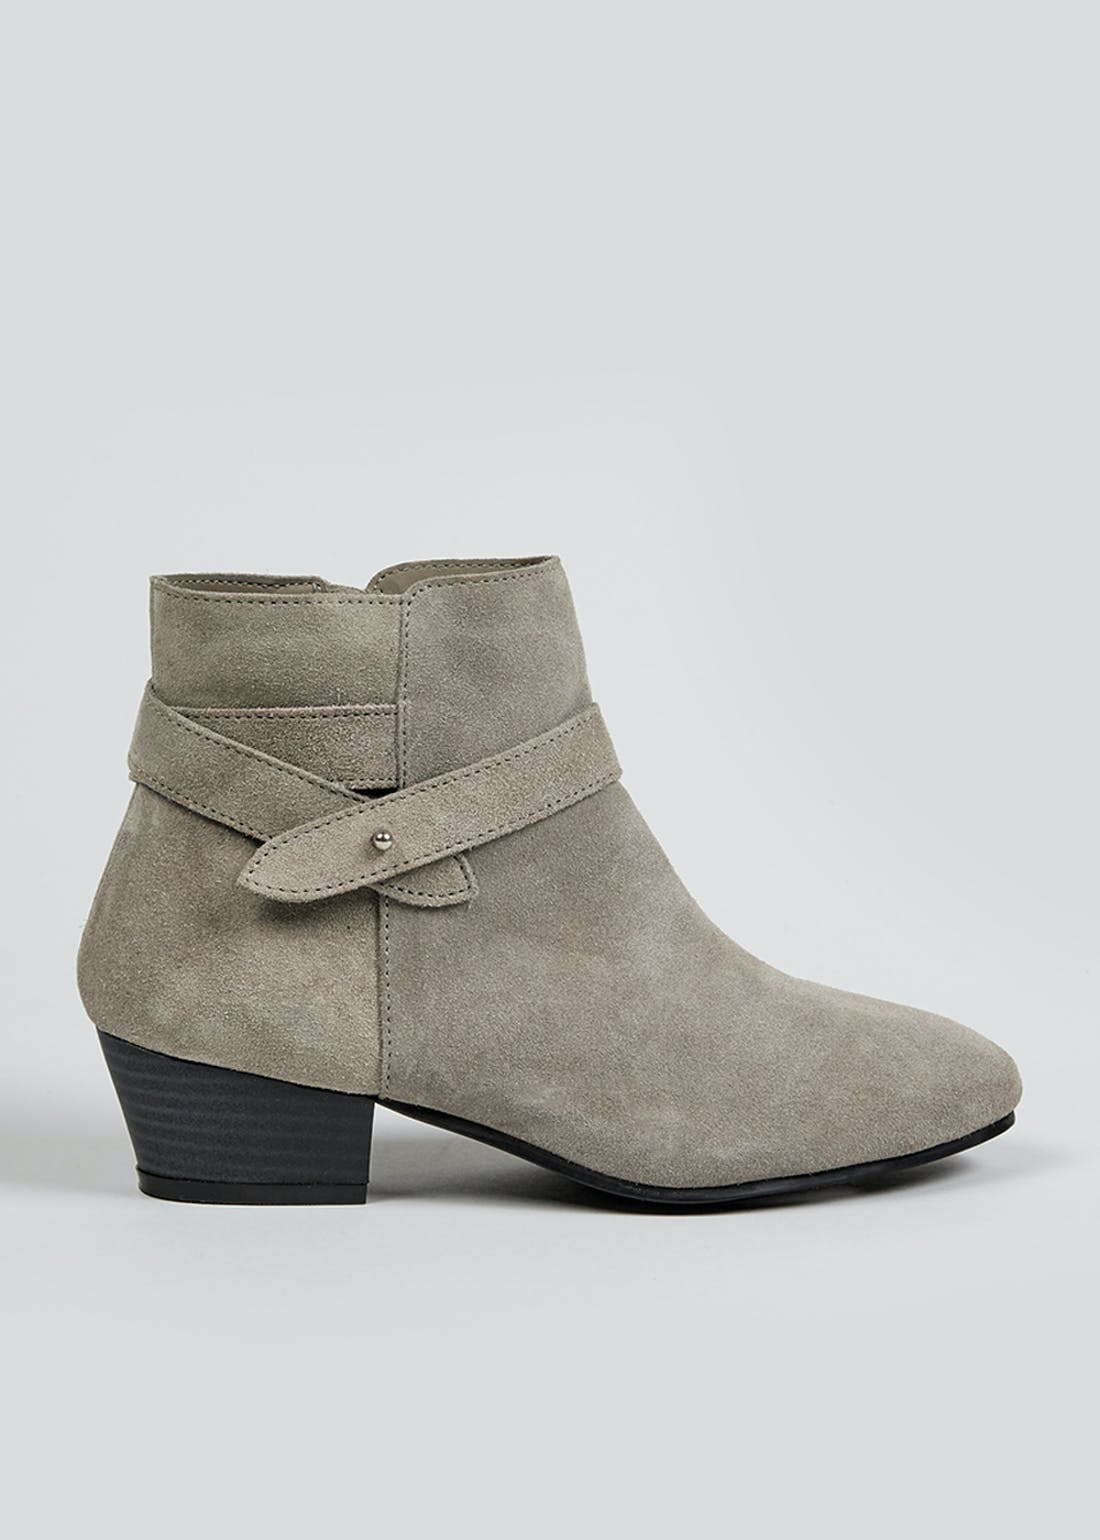 Soleflex Grey Real Suede Western Ankle Boots